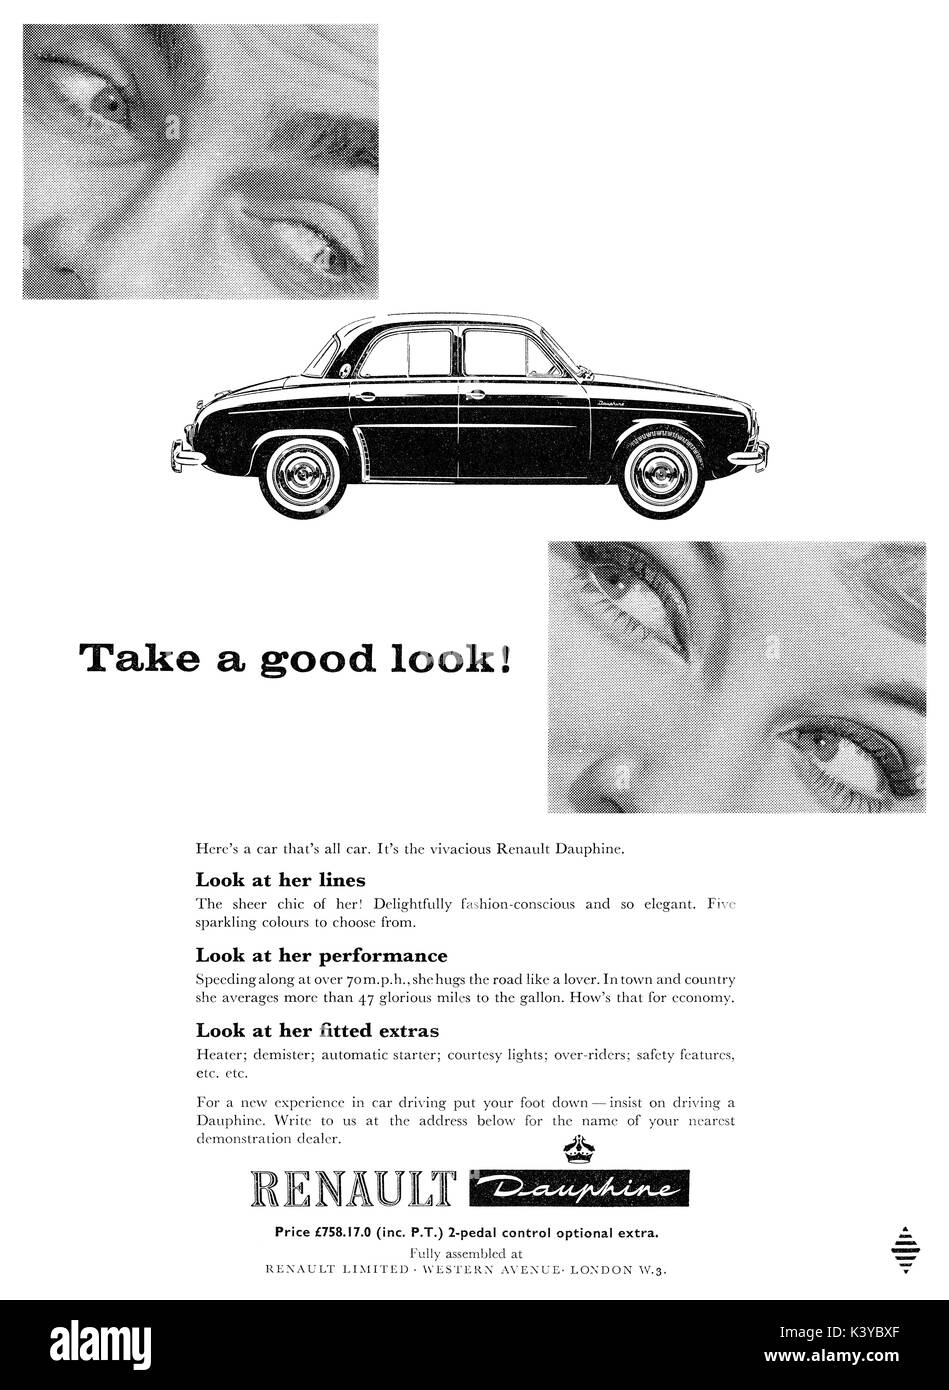 1959 British advertisement for the Renault Dauphine motor car ...